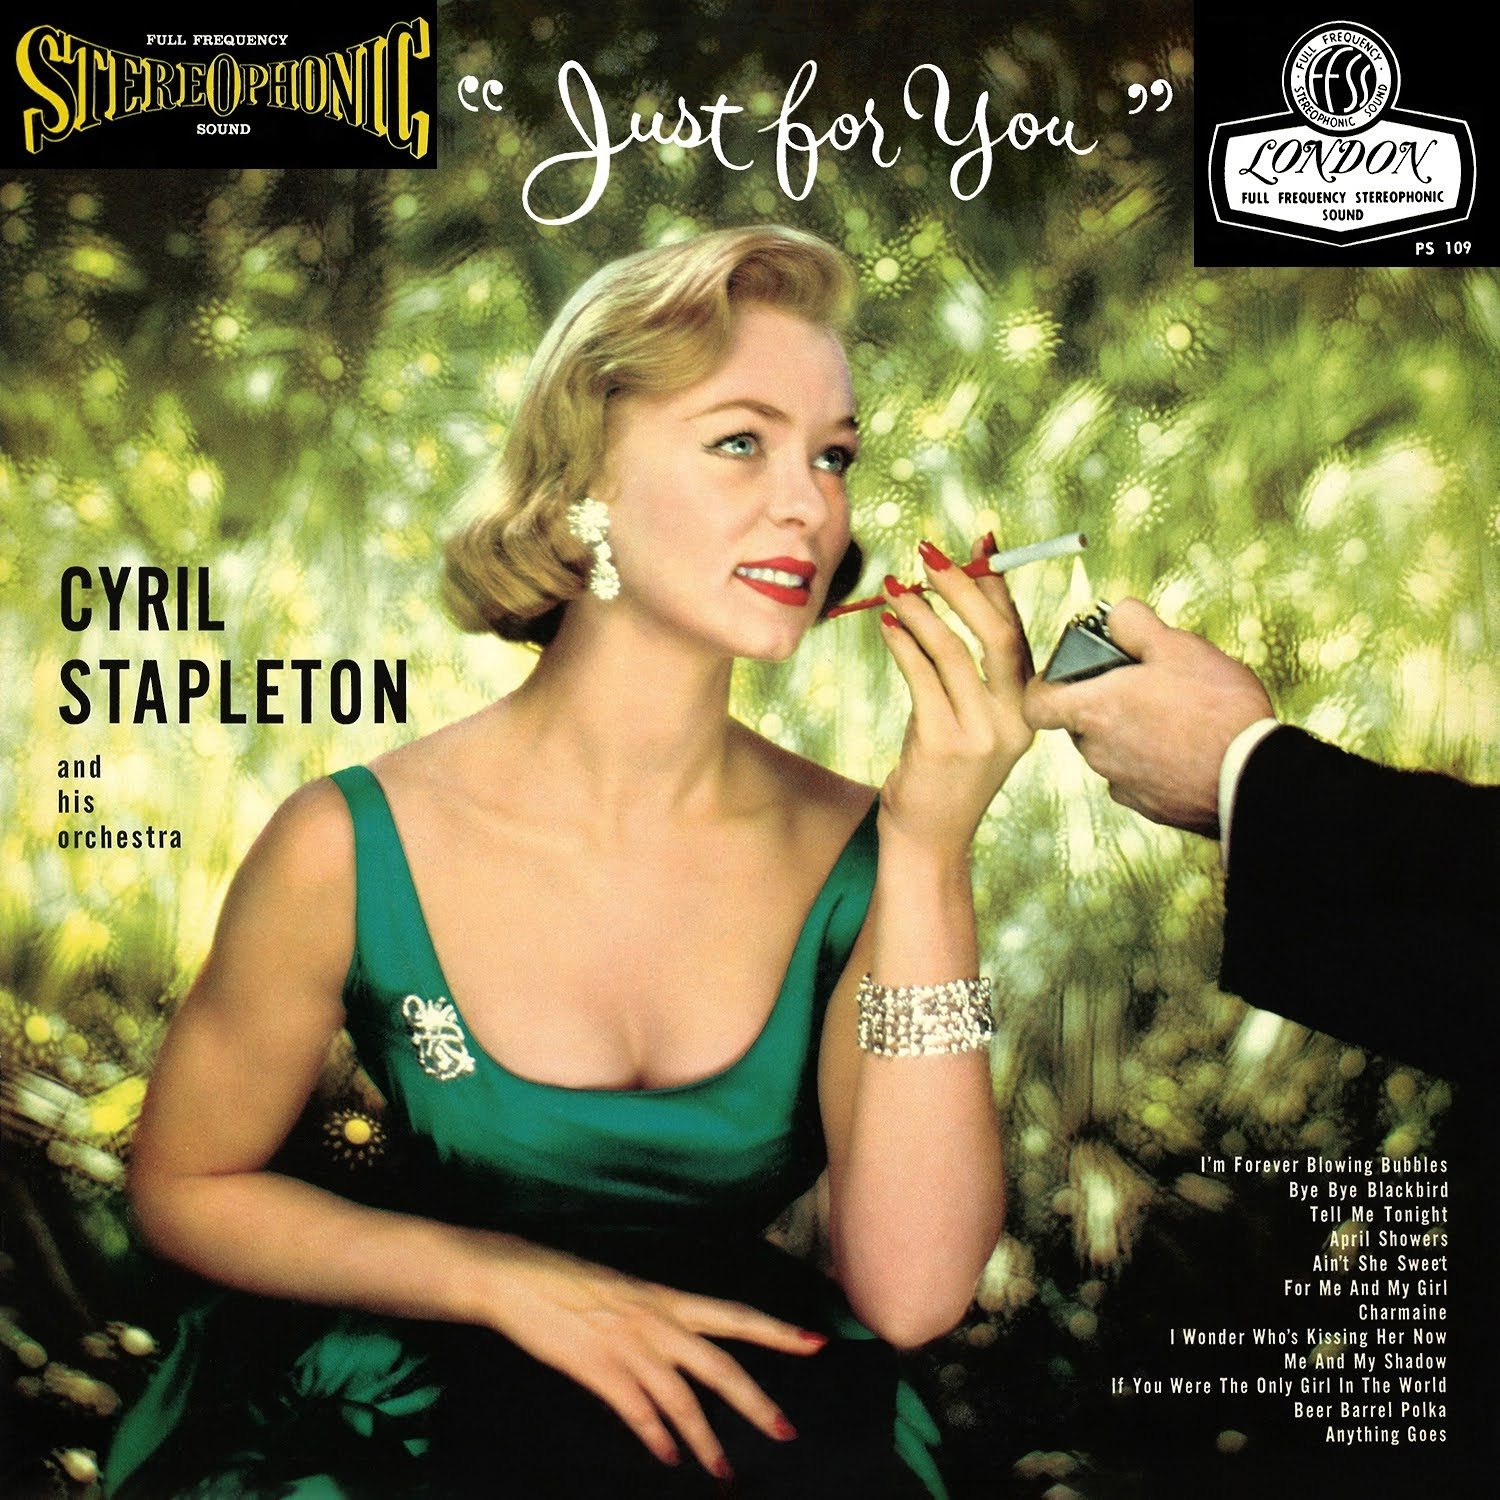 Cyril Stapleton